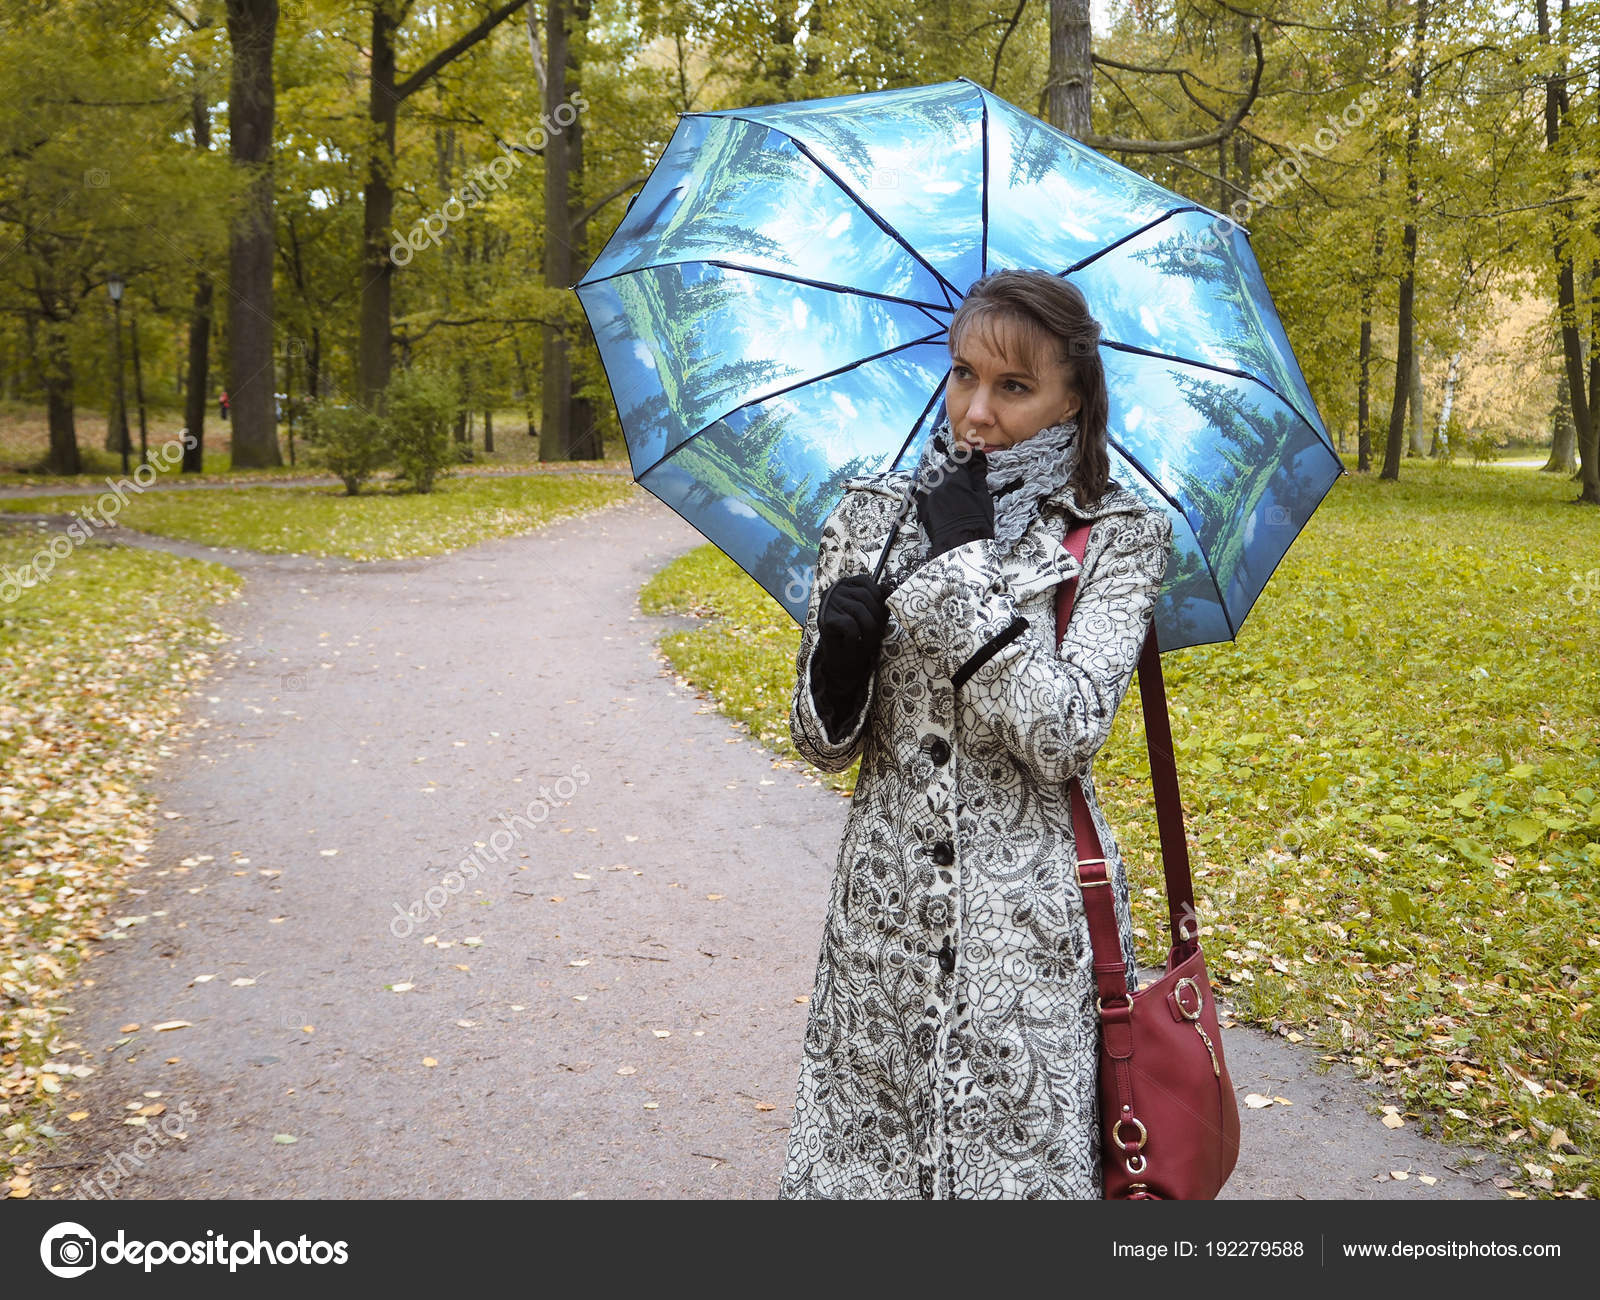 Woman Umbrella Park Stock Photo C Sablinstanislav 192279588